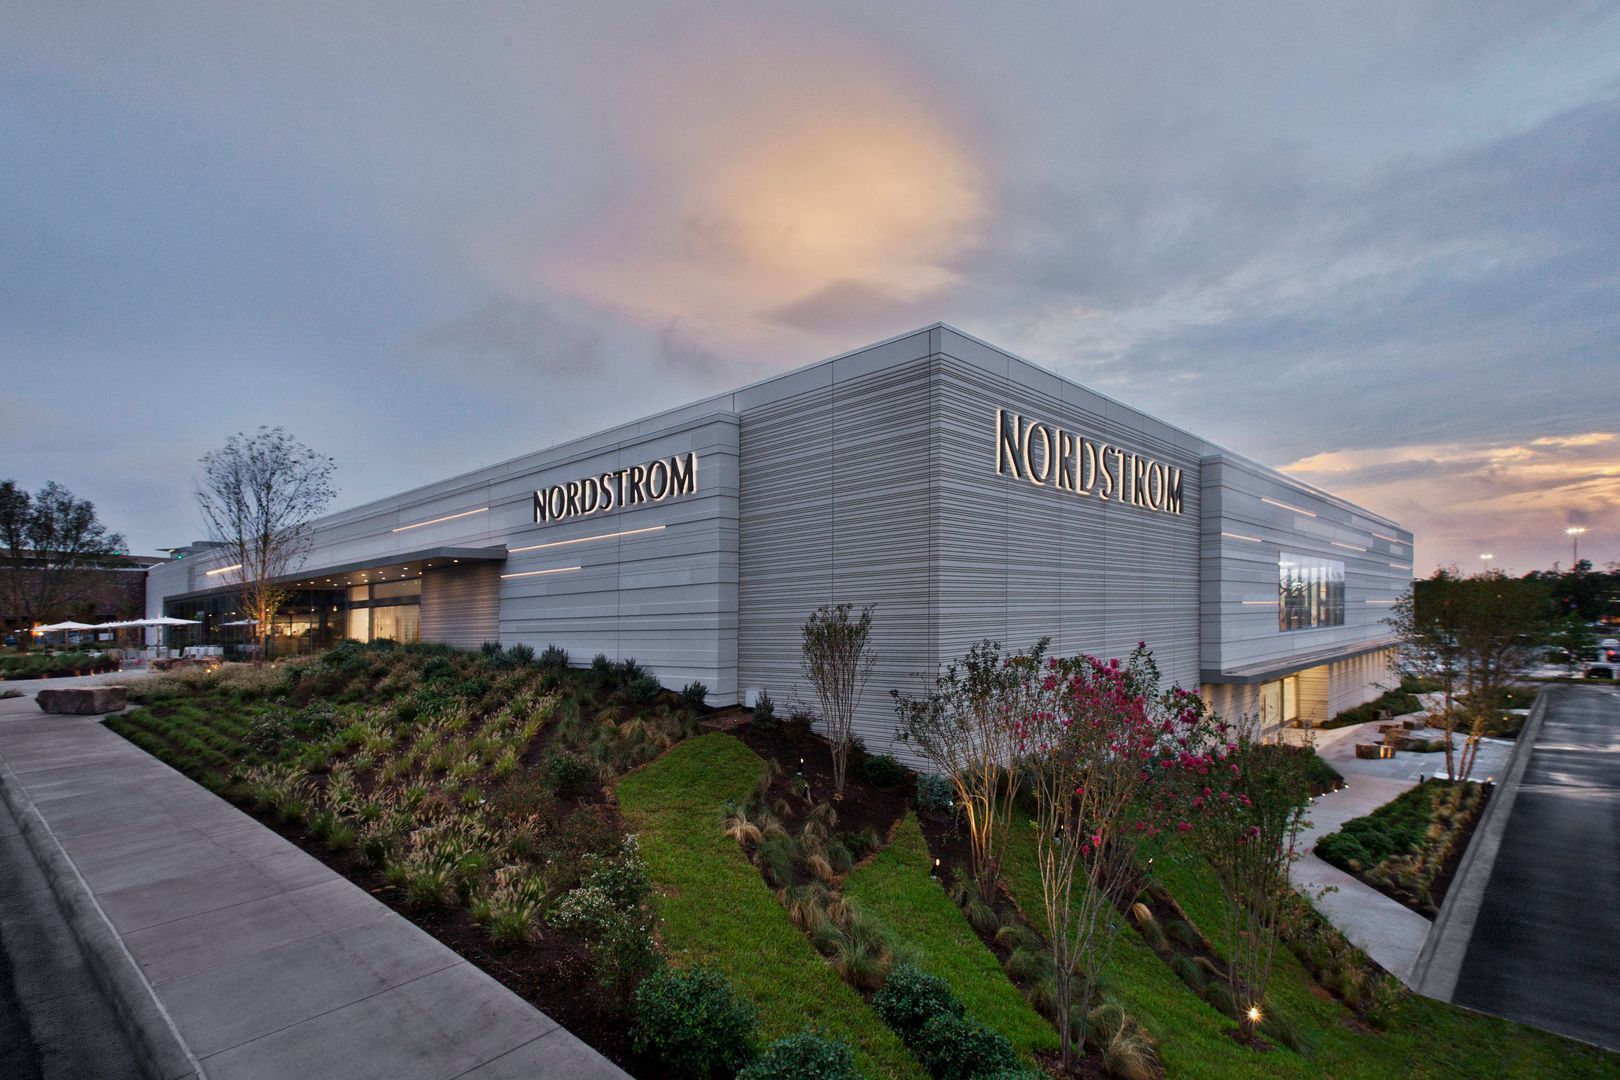 The contemporary look at the Nordstrom in The Woodland, TX, featuring the aesthetic versatility of precast concrete that became the new store signature and representative of their branding.